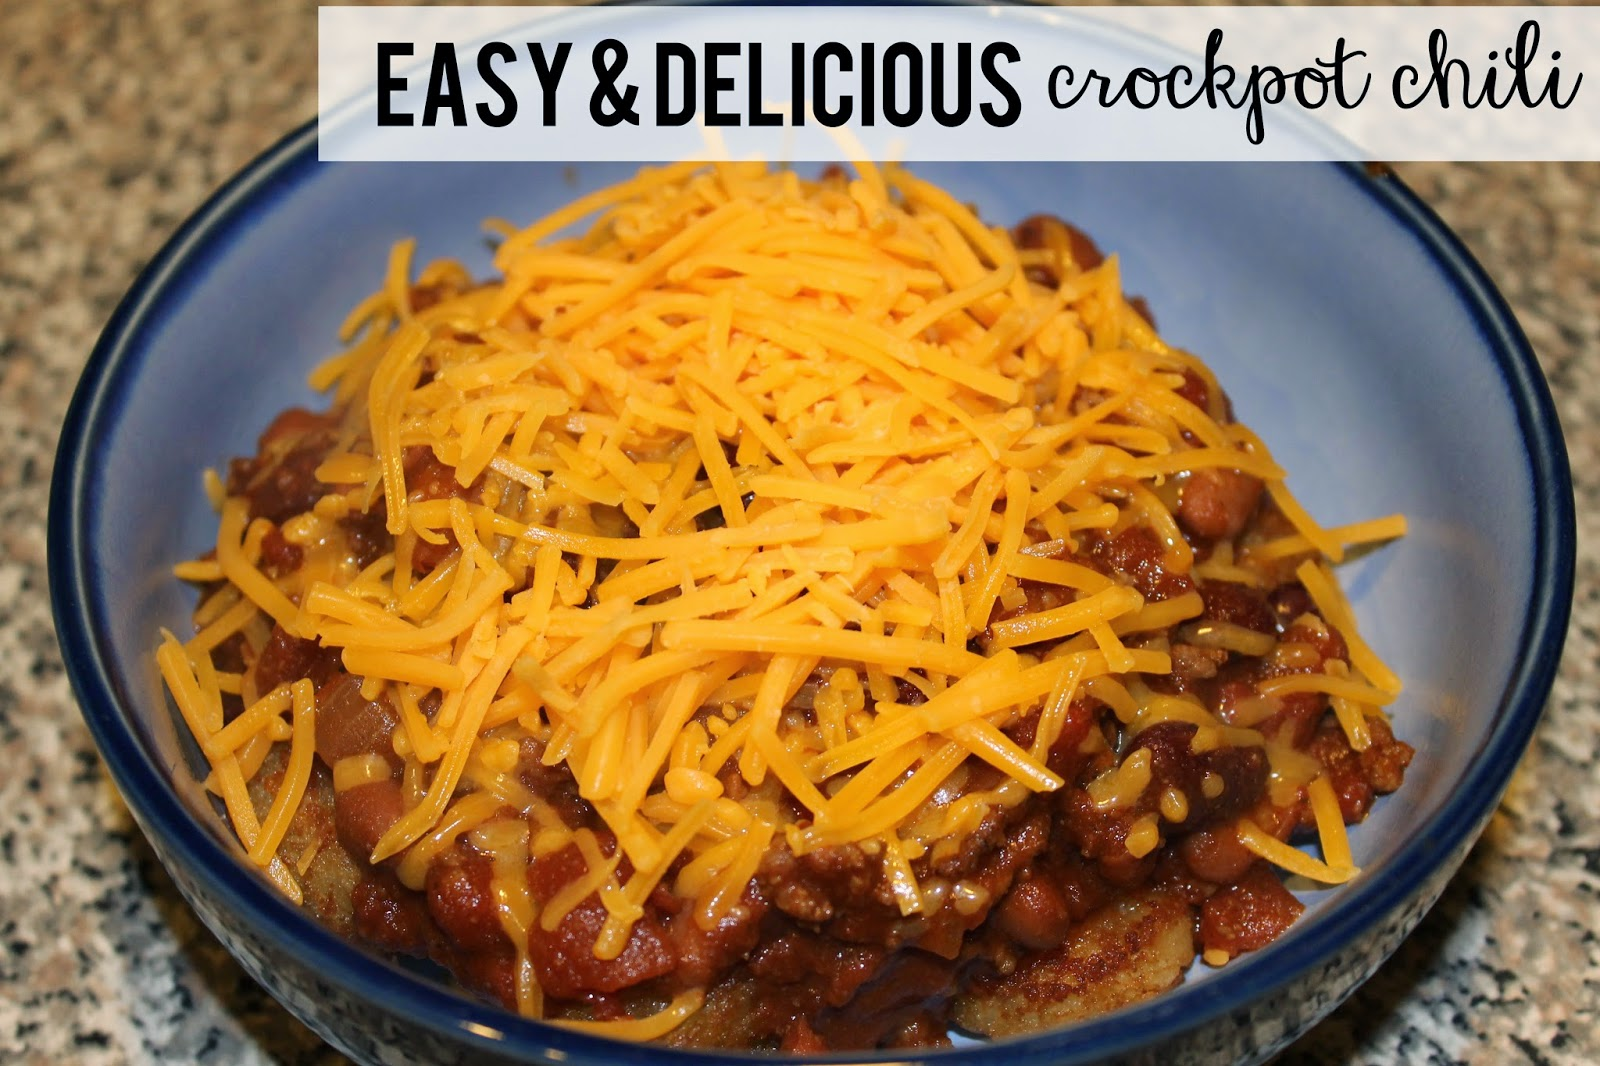 Jan 02, · Simple, delicious chili. As we enter the month of January, many of us are experiencing extremely cold temperatures. Winter always makes us crave warm, comforting meals, but no one wants to spend a ton of time in front of the stove cooking.